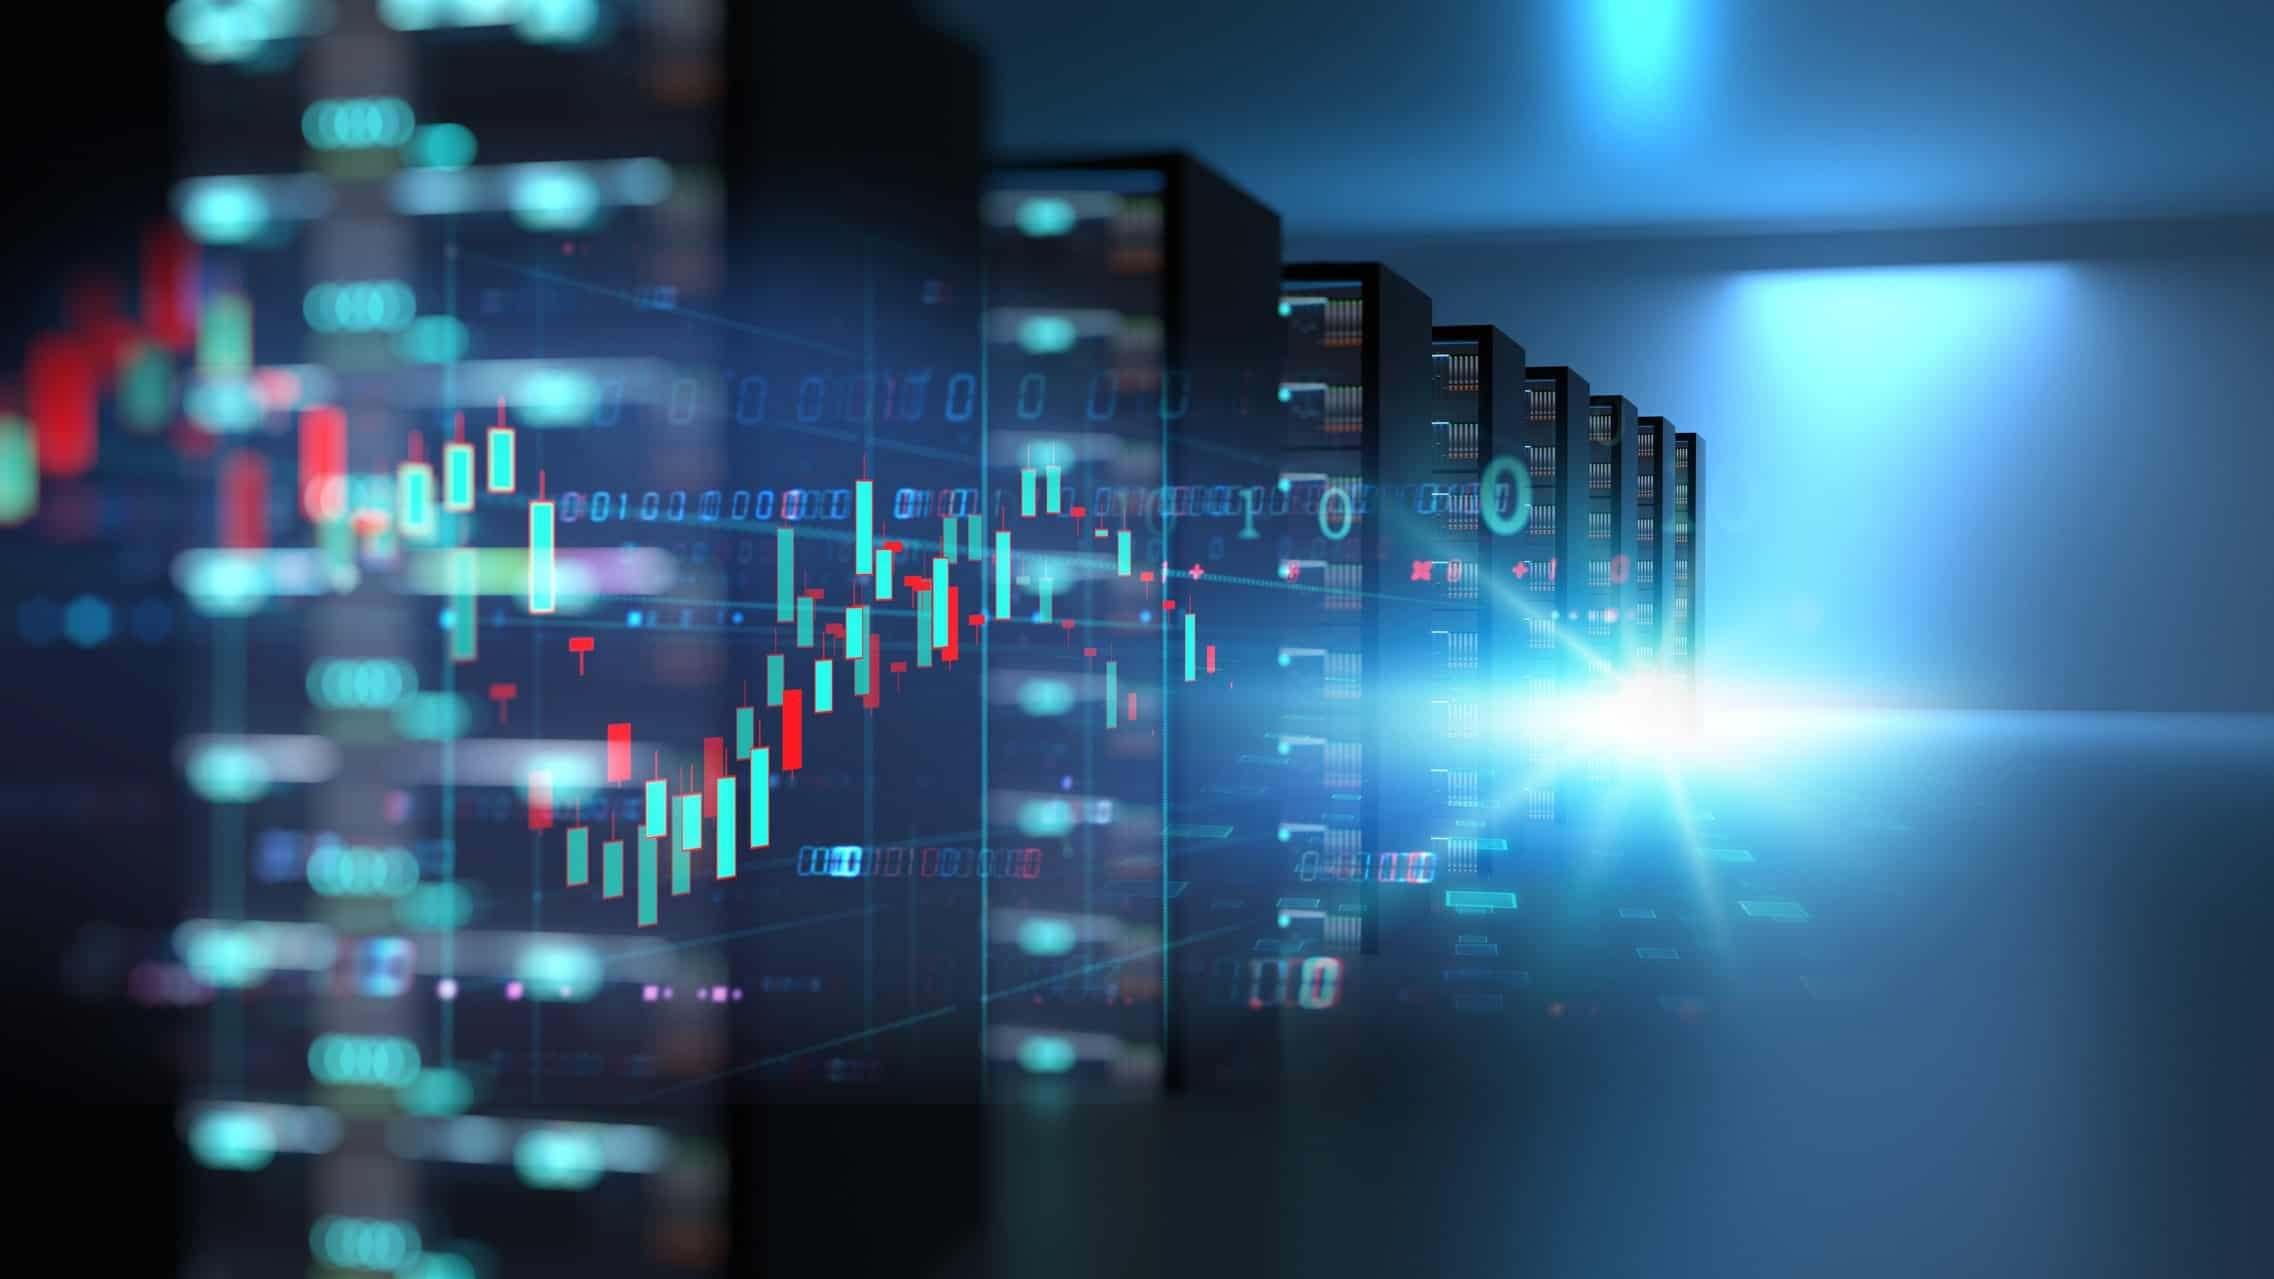 stock chart superimposed over image of data centre, asx 200 tech shares